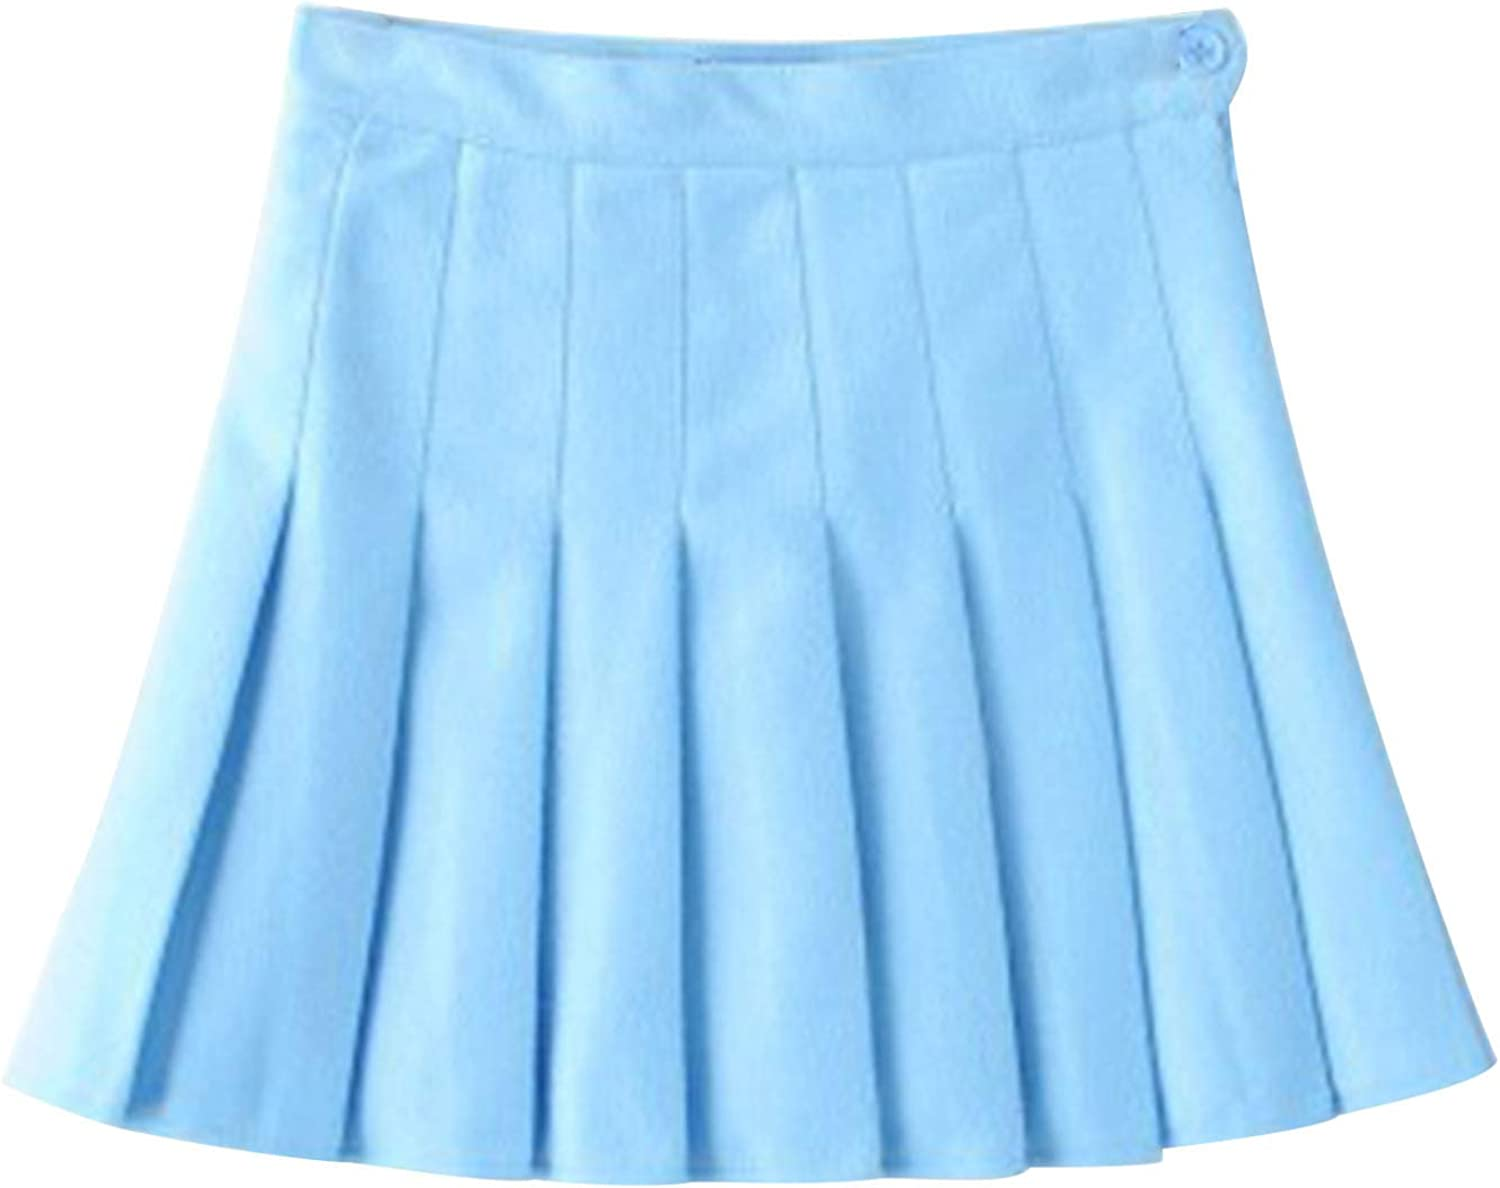 Kayotuas Girls Womens High Waisted Pleated Skirts Tennis School Uniforms Mini Skater Skirt Lining Shorts